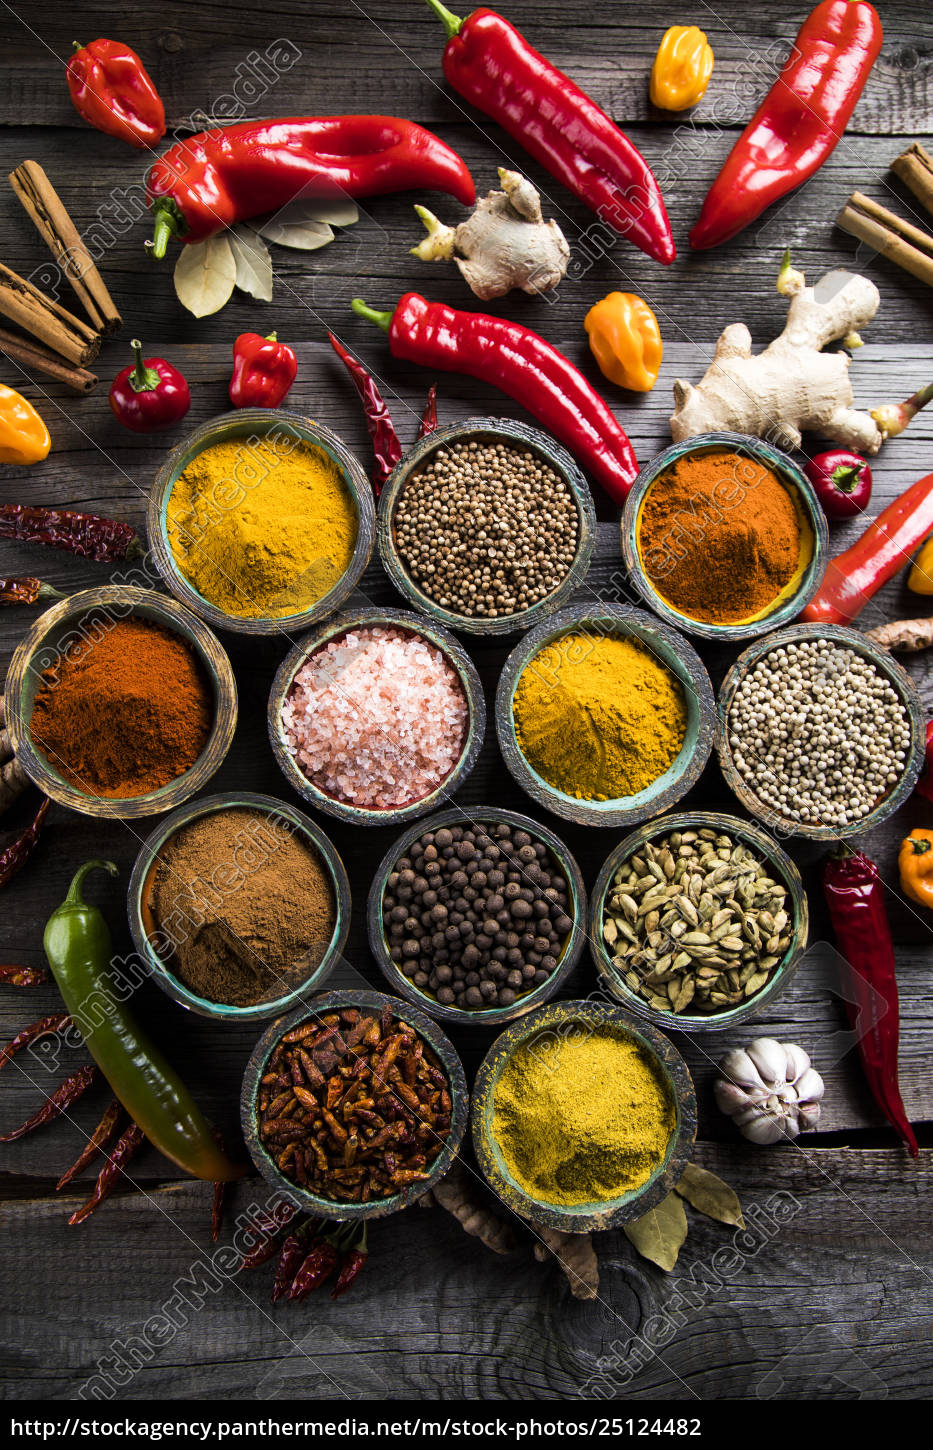 a, selection, of, various, colorful, spices - 25124482